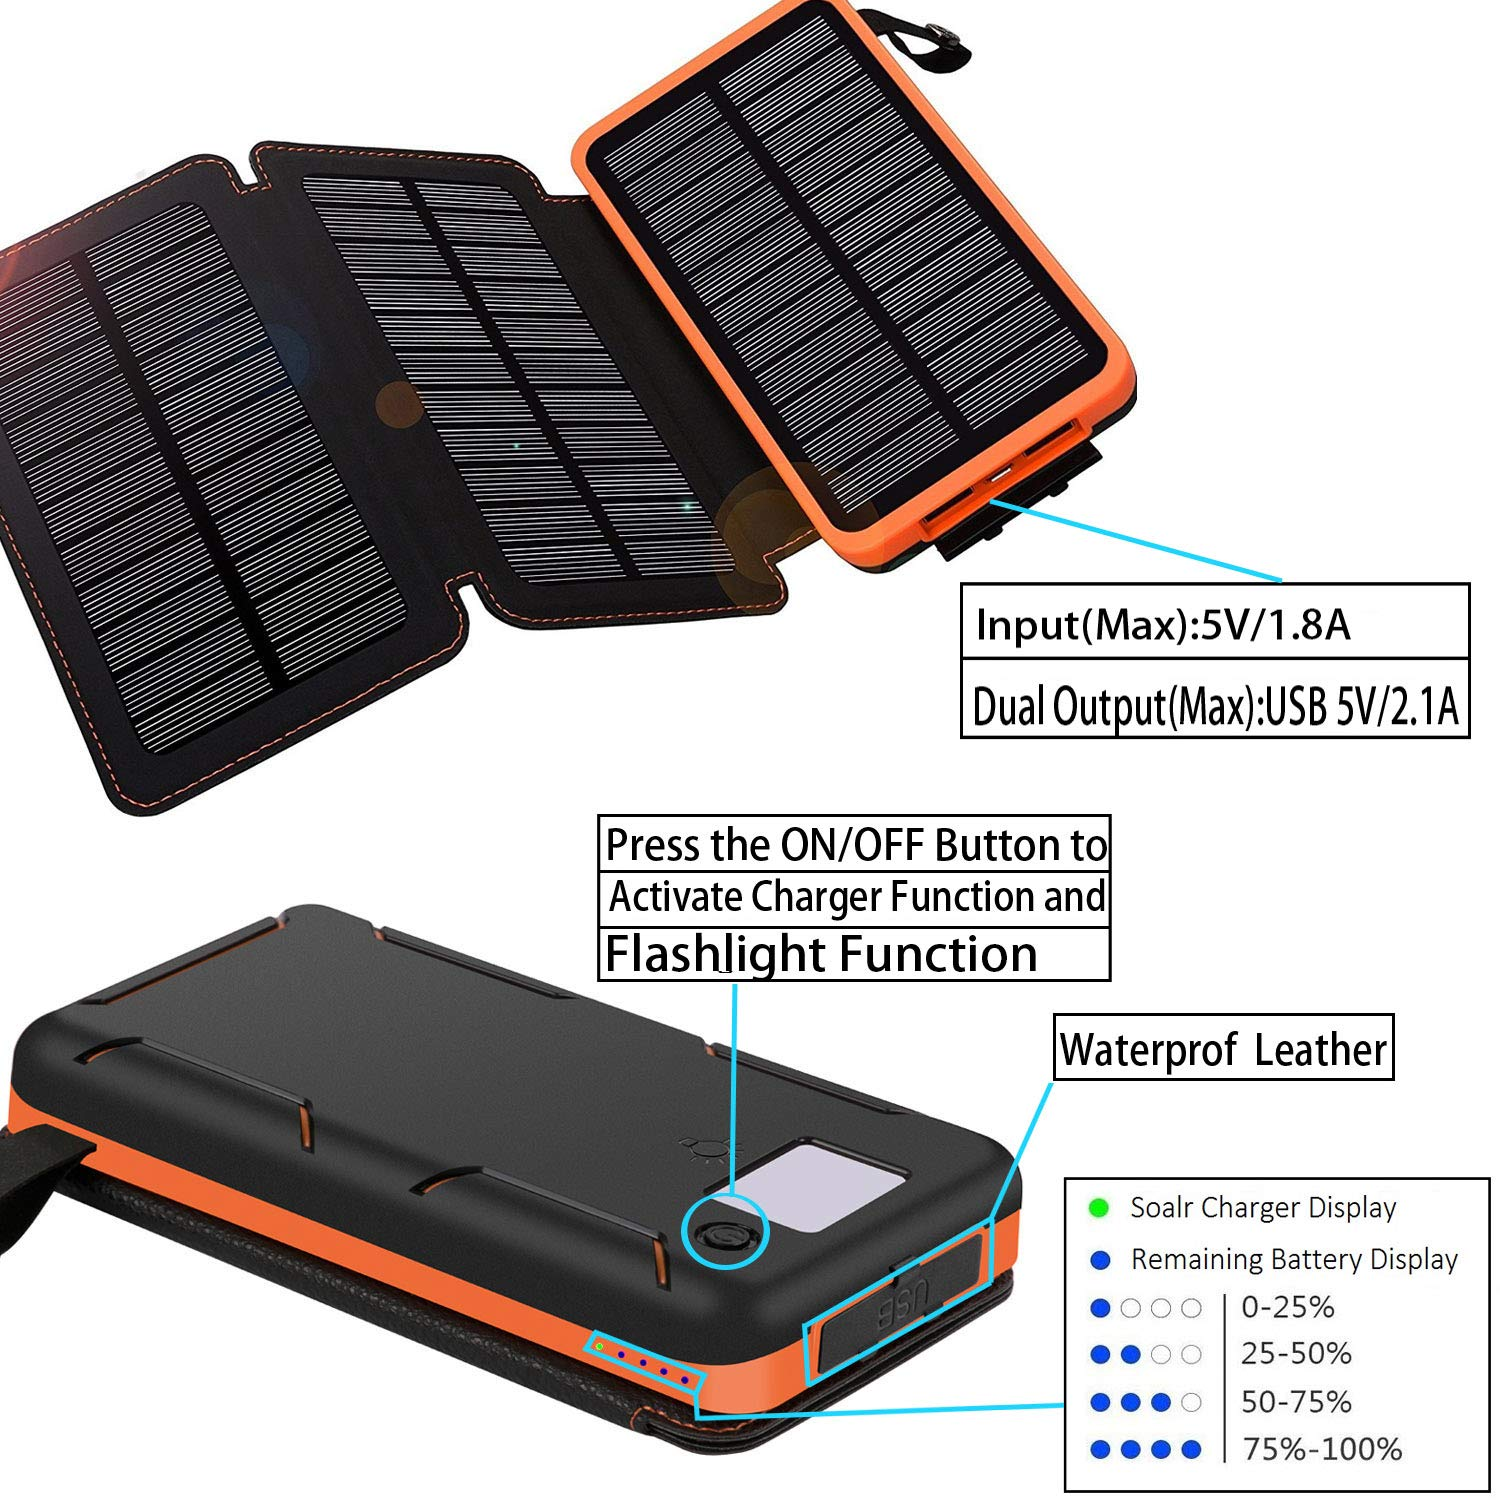 Solar Charger 24000mAh,Solar Power Bank Waterproof Dual USB Output with 3 Solar Panels External Battery Bank with Flashlight for iPhone,Samsung,iPad and Outdoor Camping(Orange) by WBPINE (Image #4)